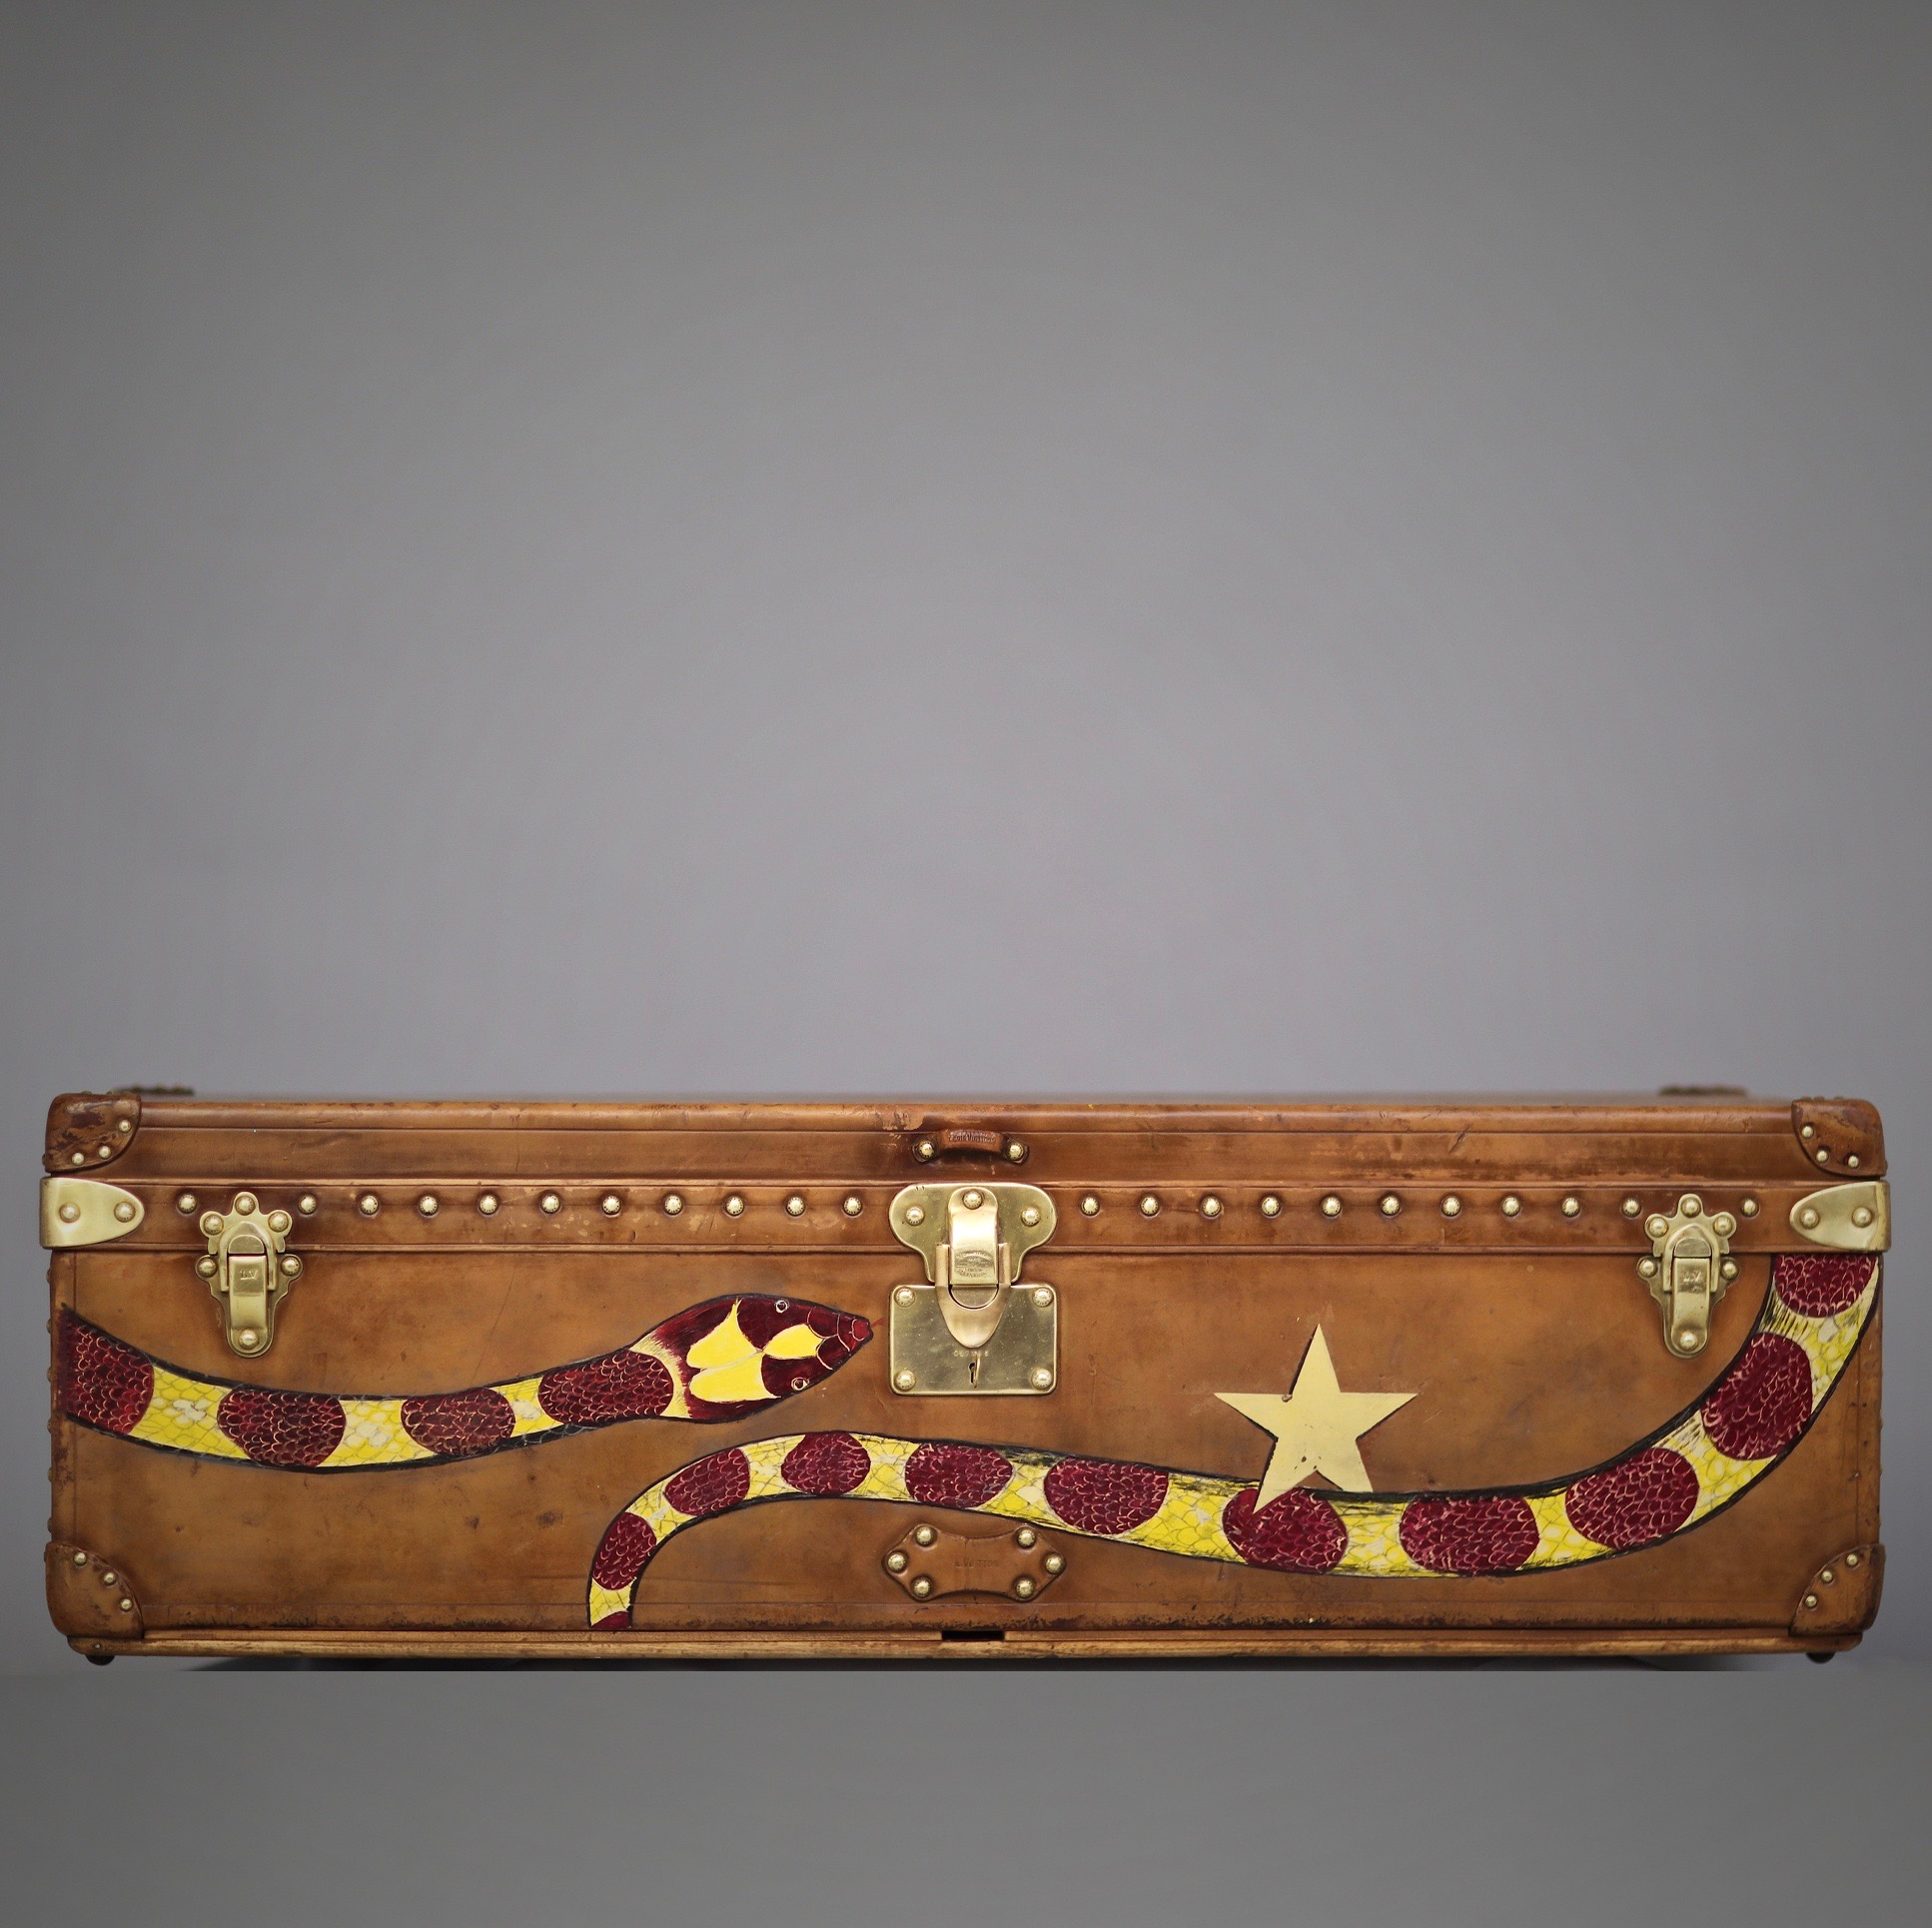 the-well-traveled-trunk-louis-vuitton-thumbnail-product-5672B